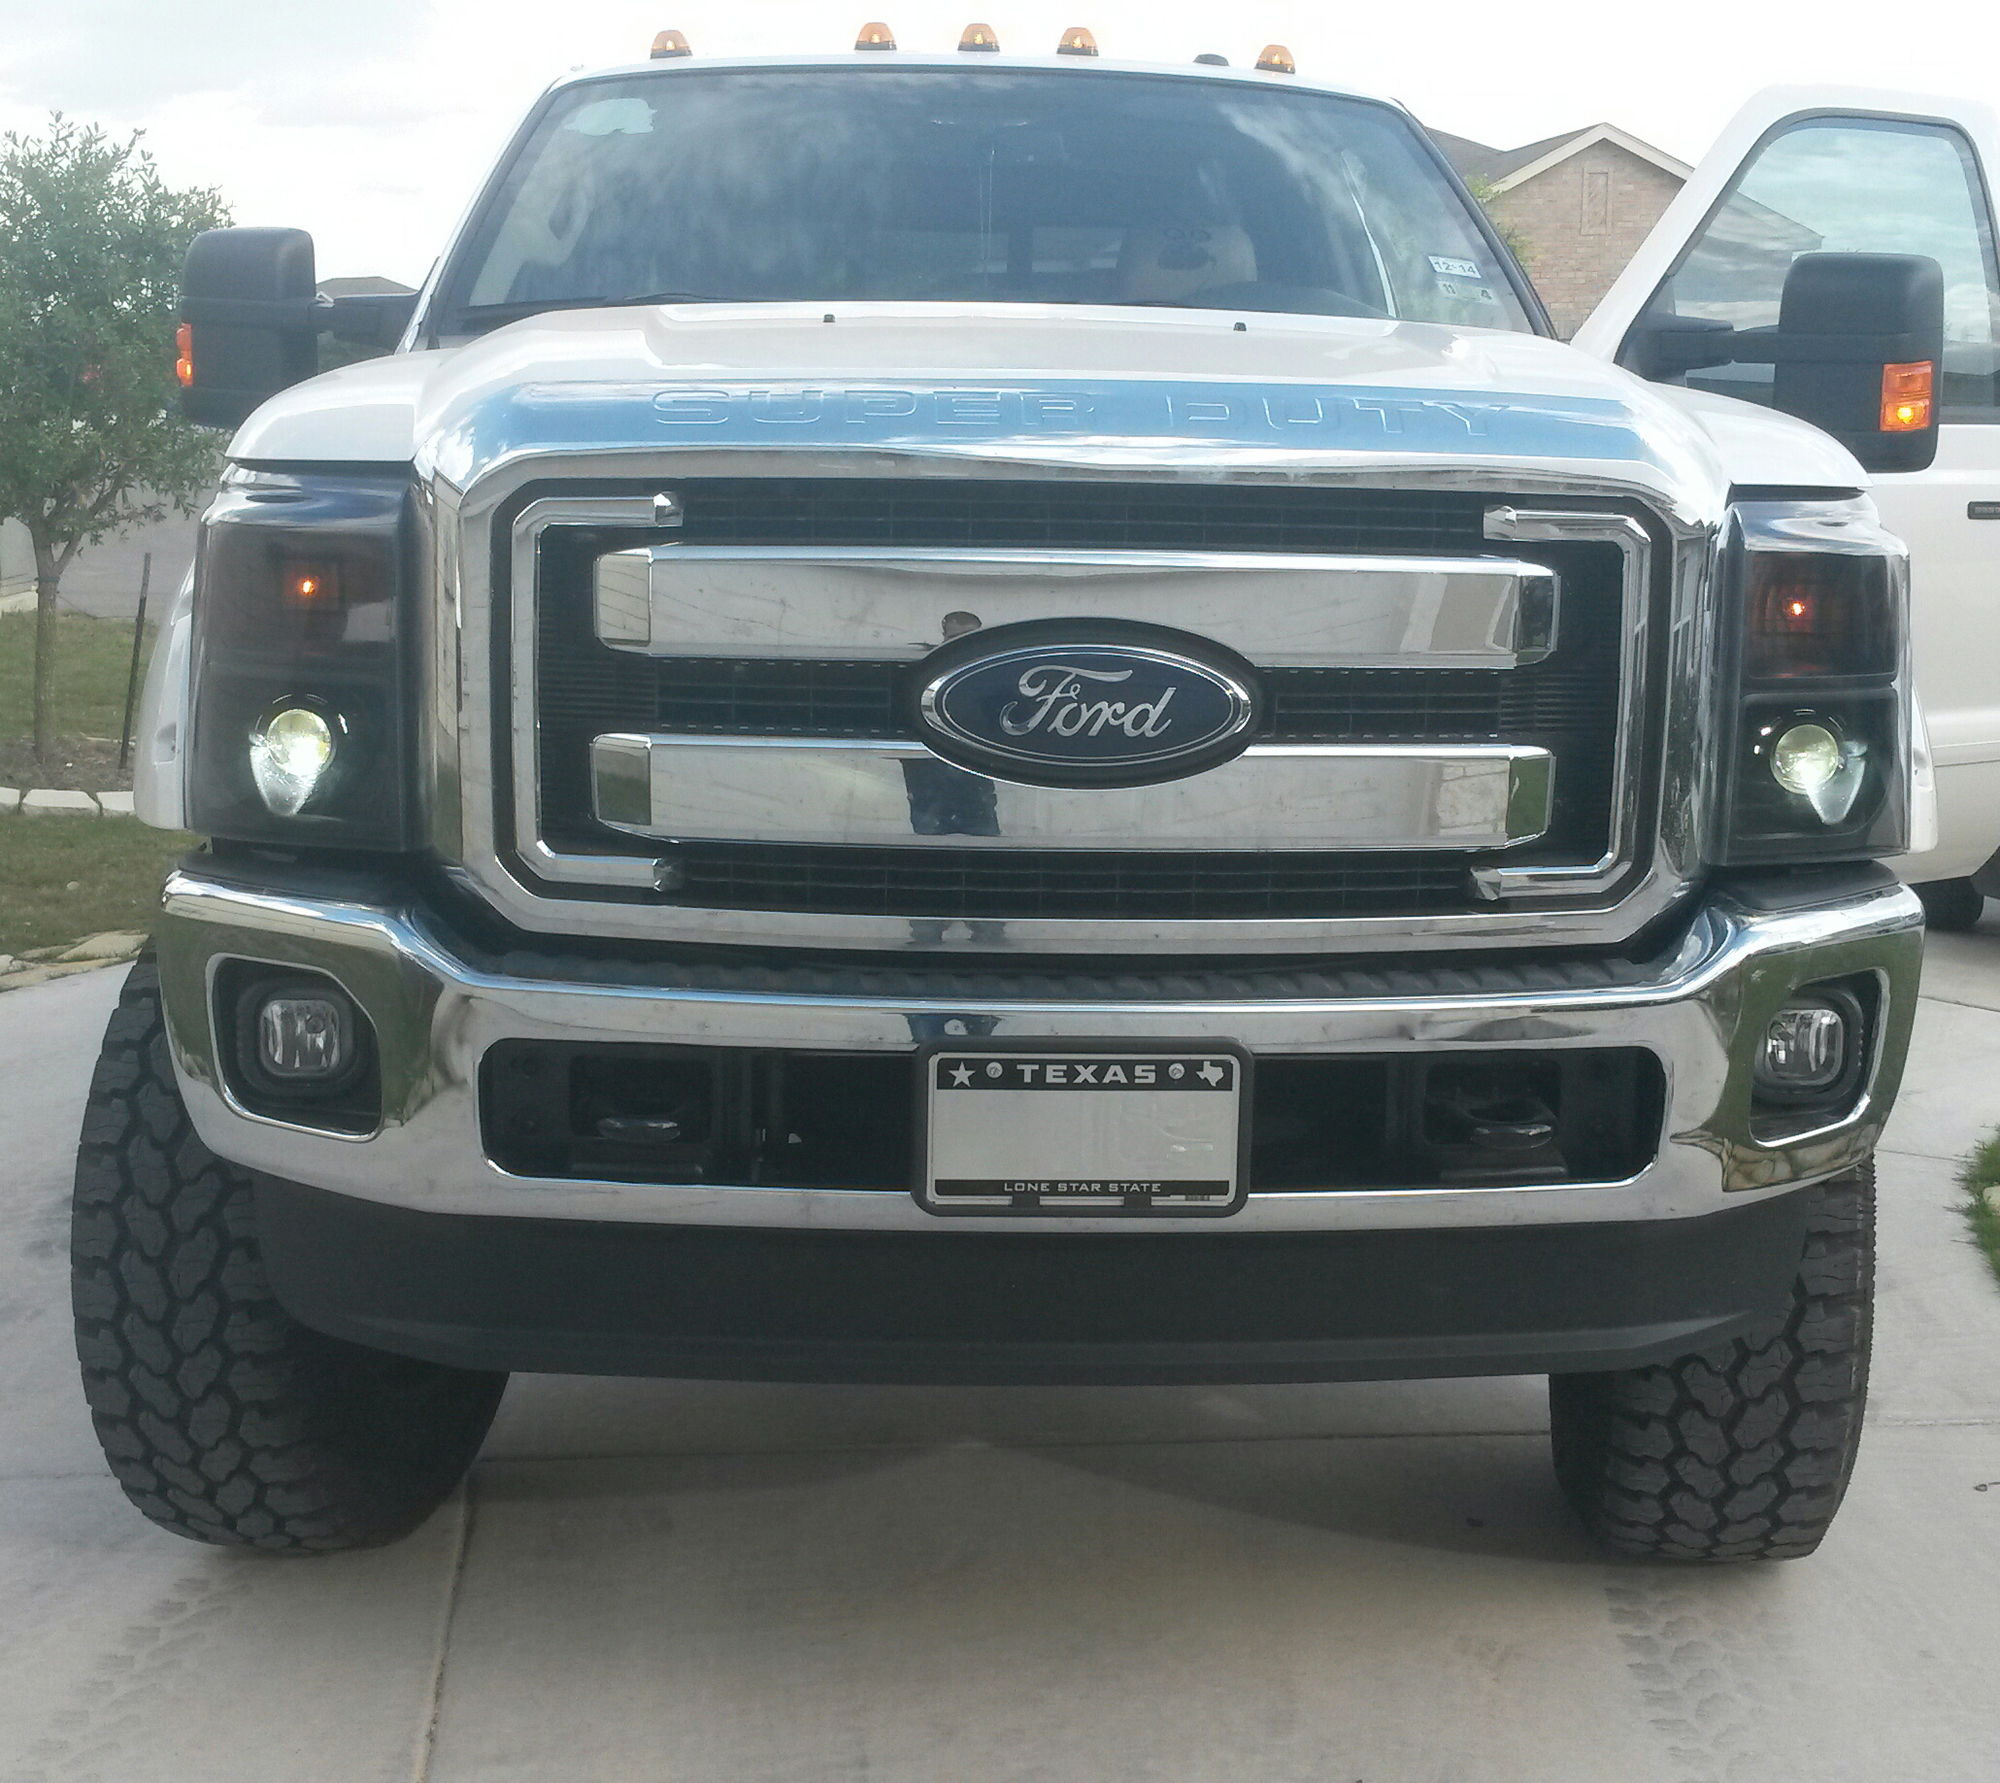 Check Out My Custom Retrofit Headlights On My 2014 Ford